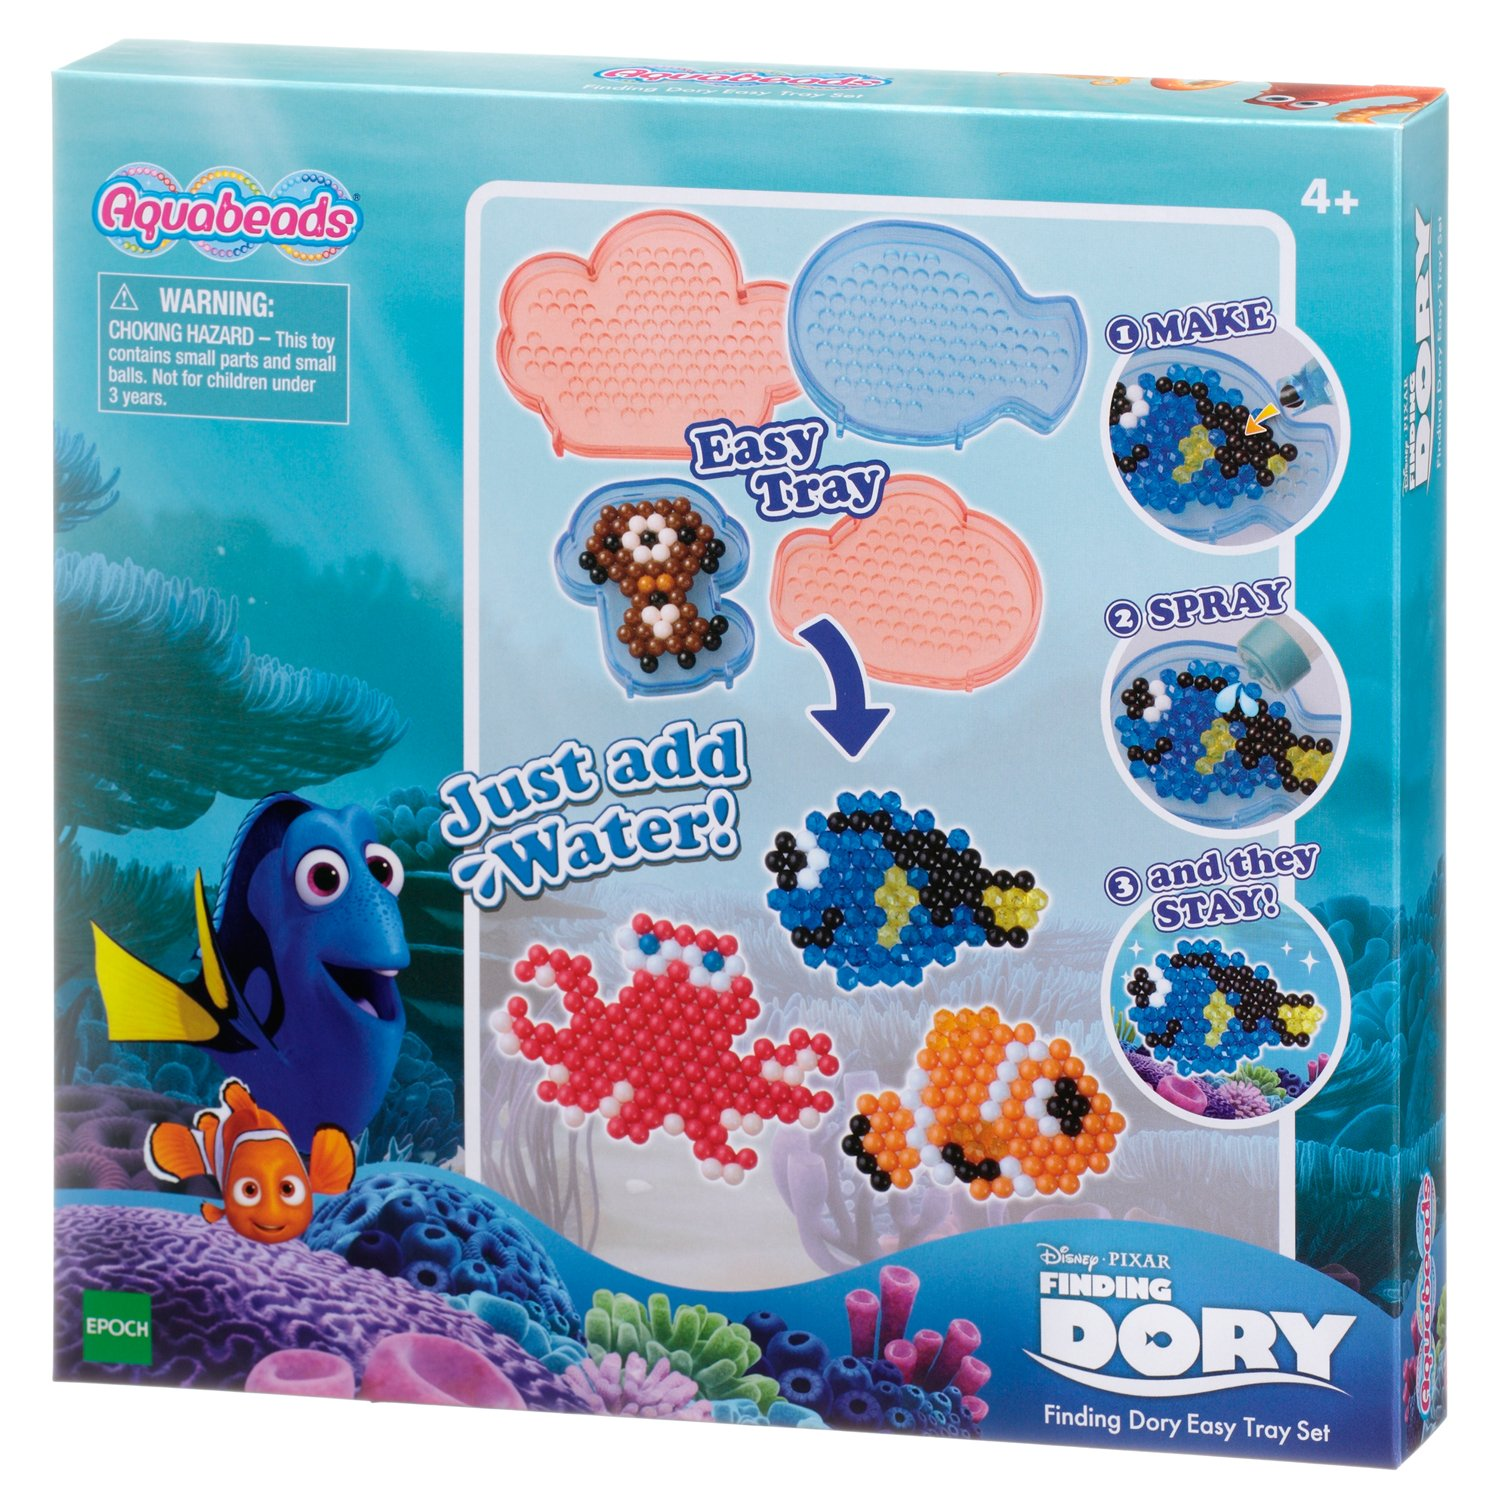 Aquabeads Disney Pixar Finding Dory Easy Tray Set